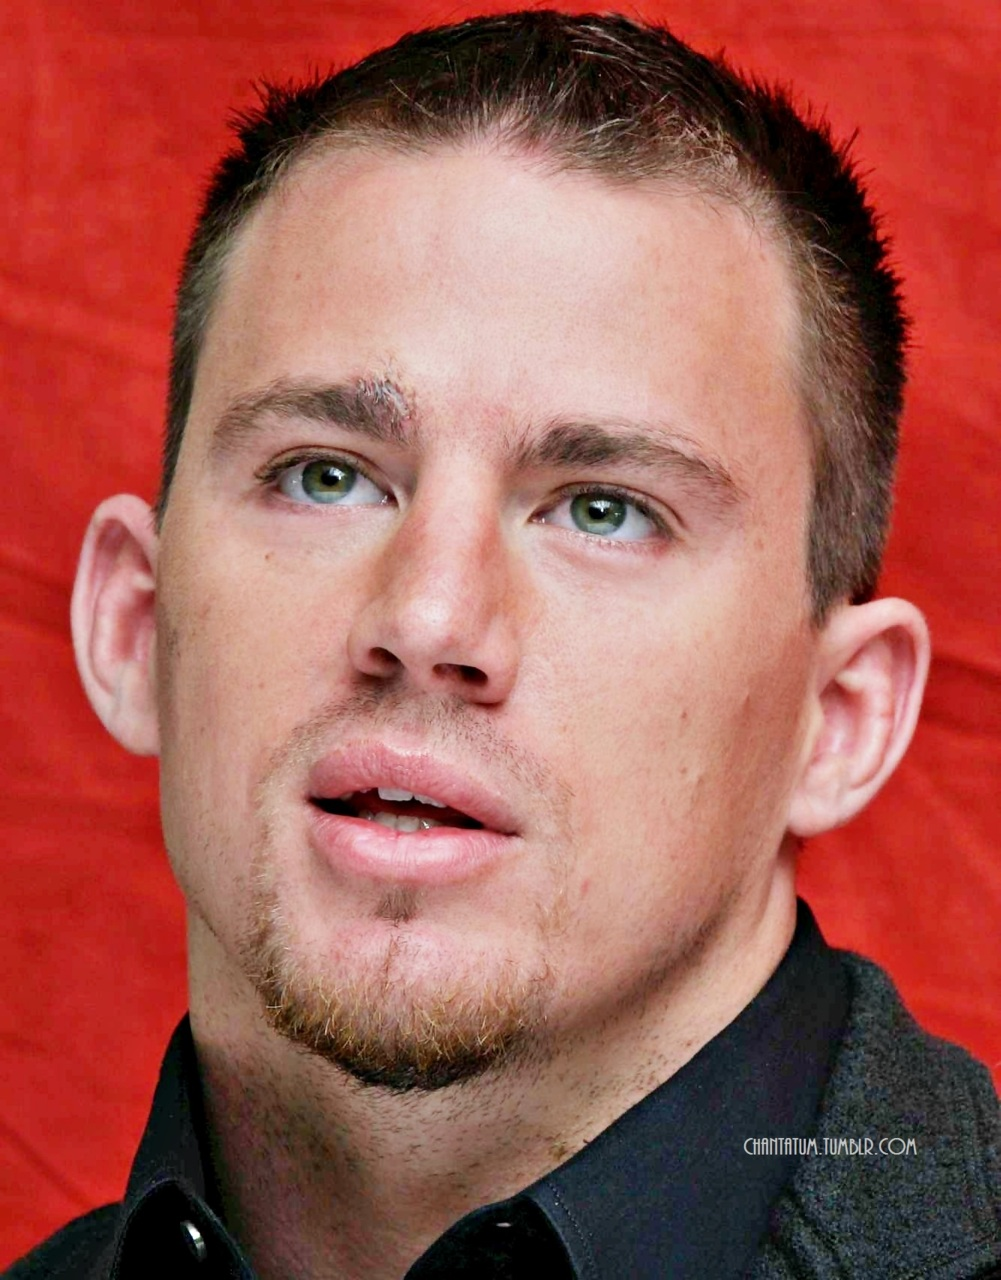 Channing Tatum Pictures : Photo-Channing Tatum Pictures : Photo-8